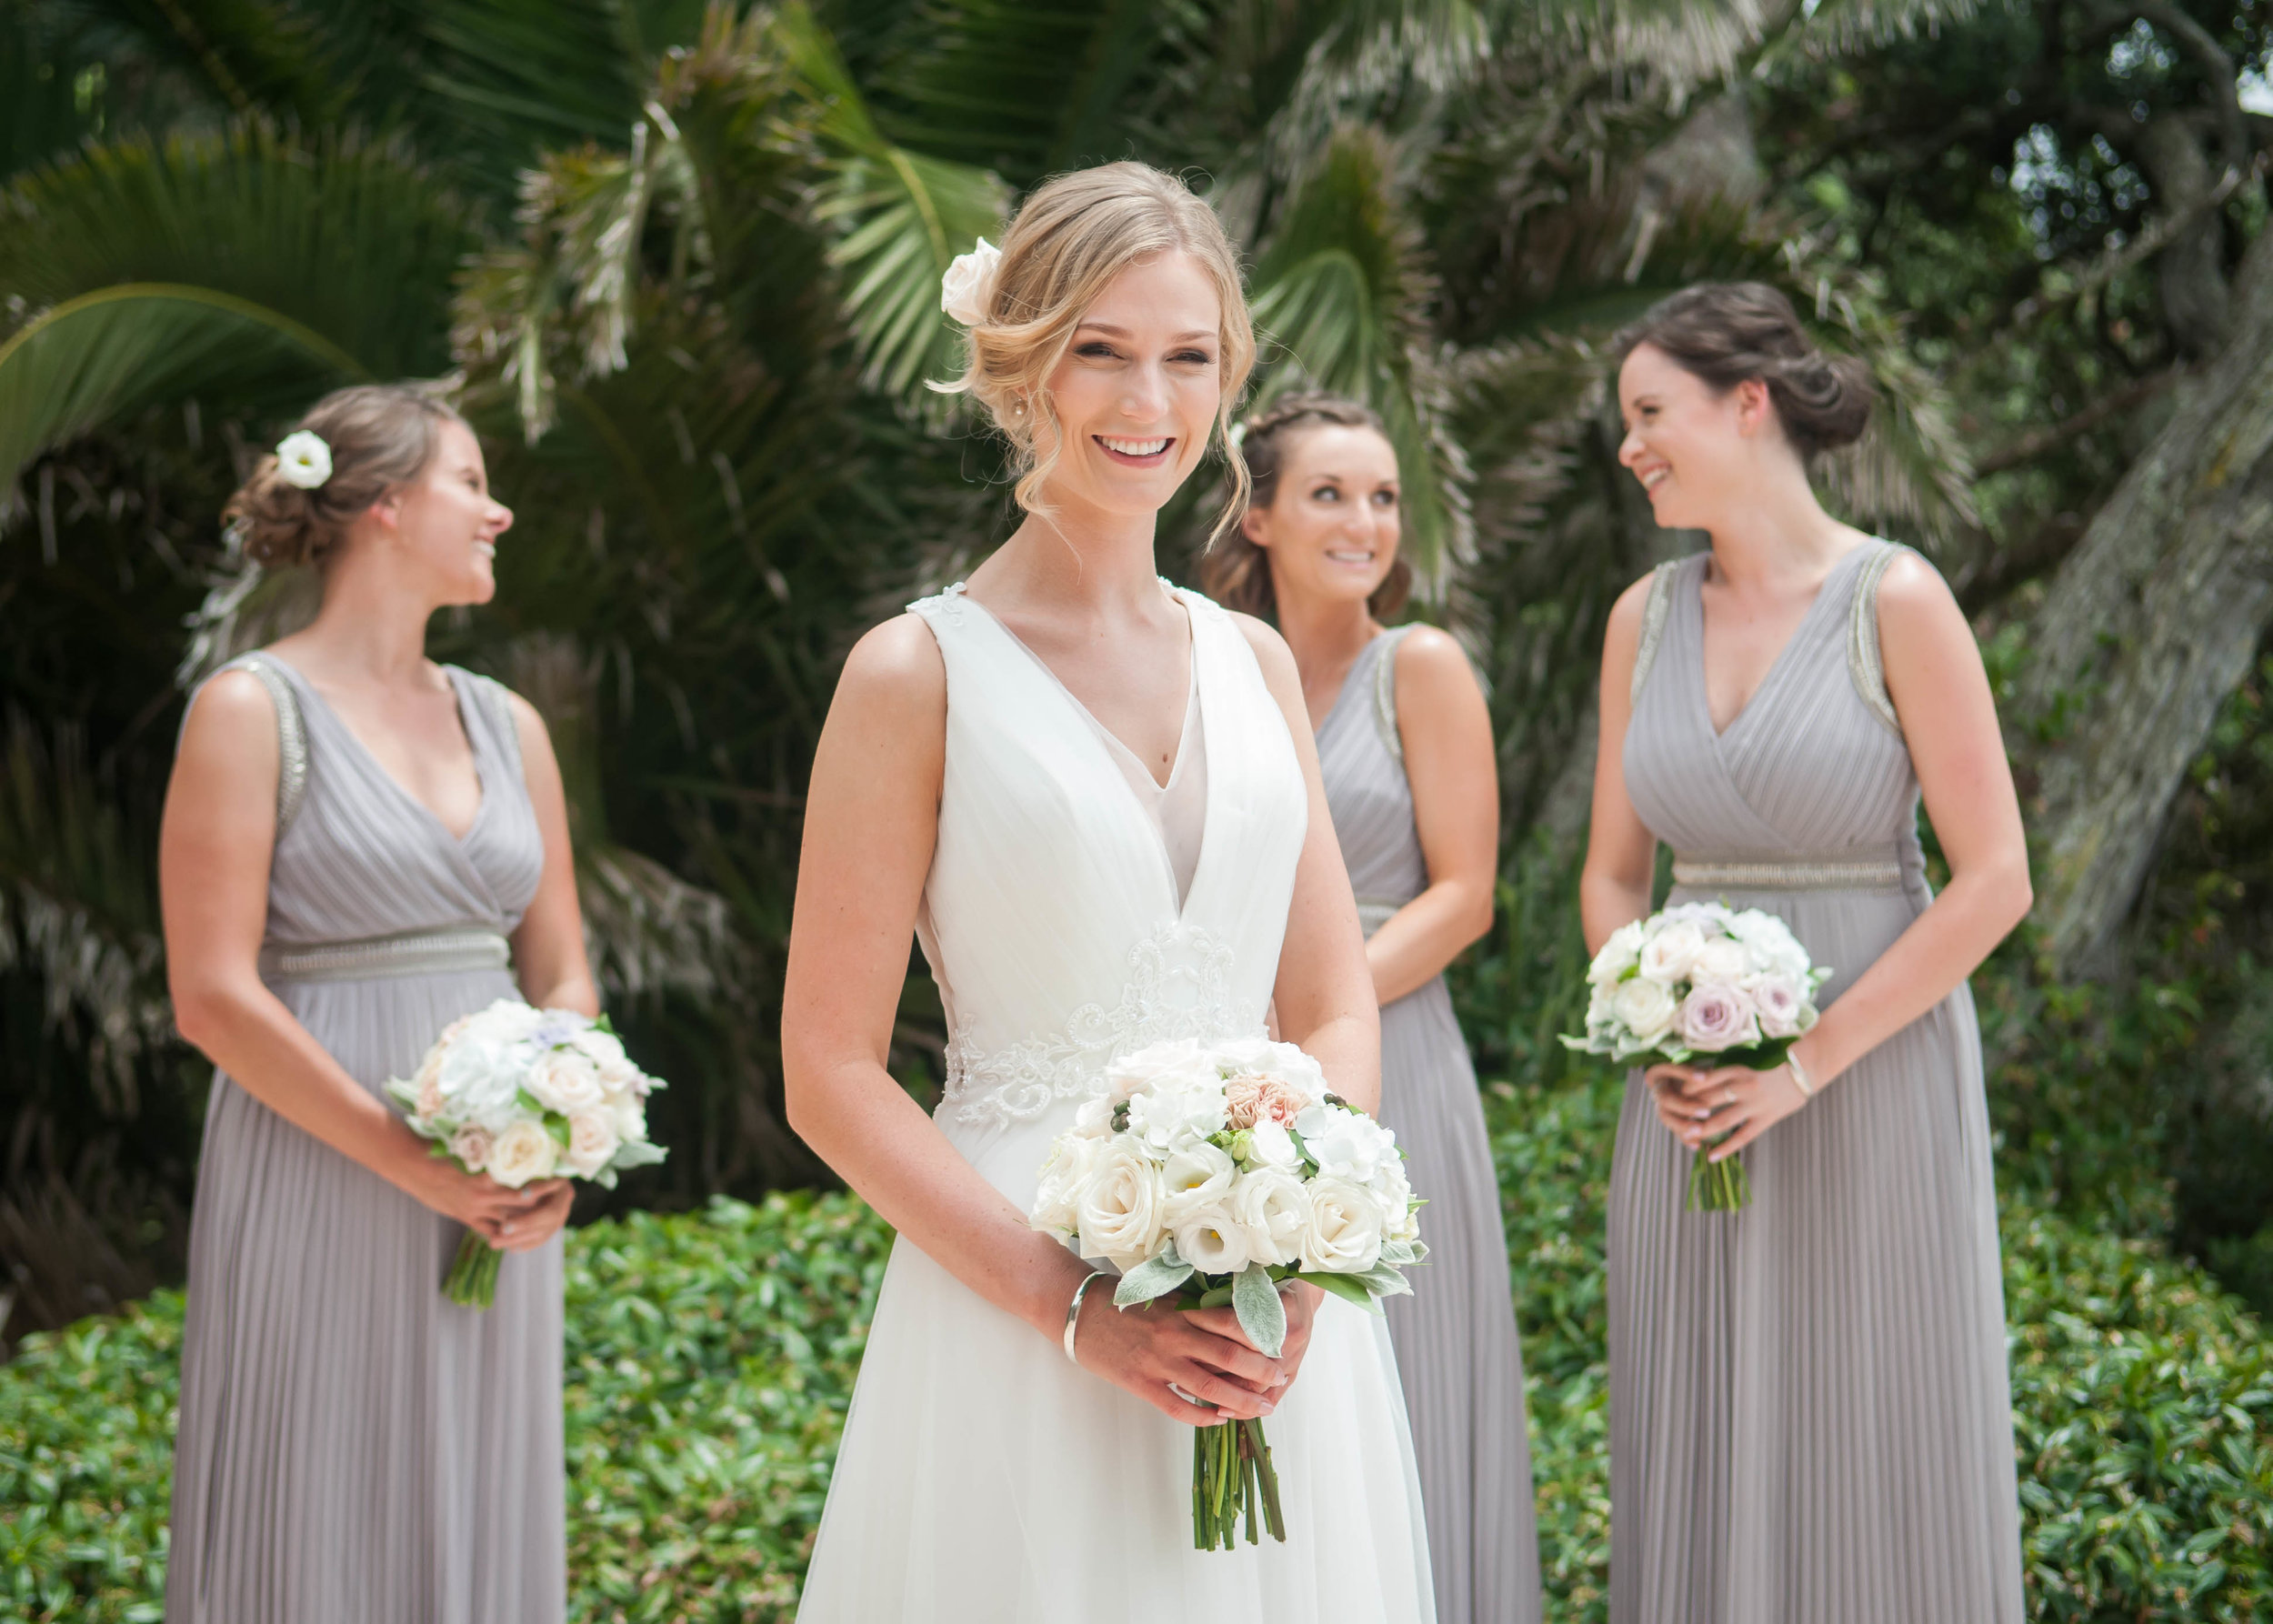 Smiling bride with bridesmaids in background